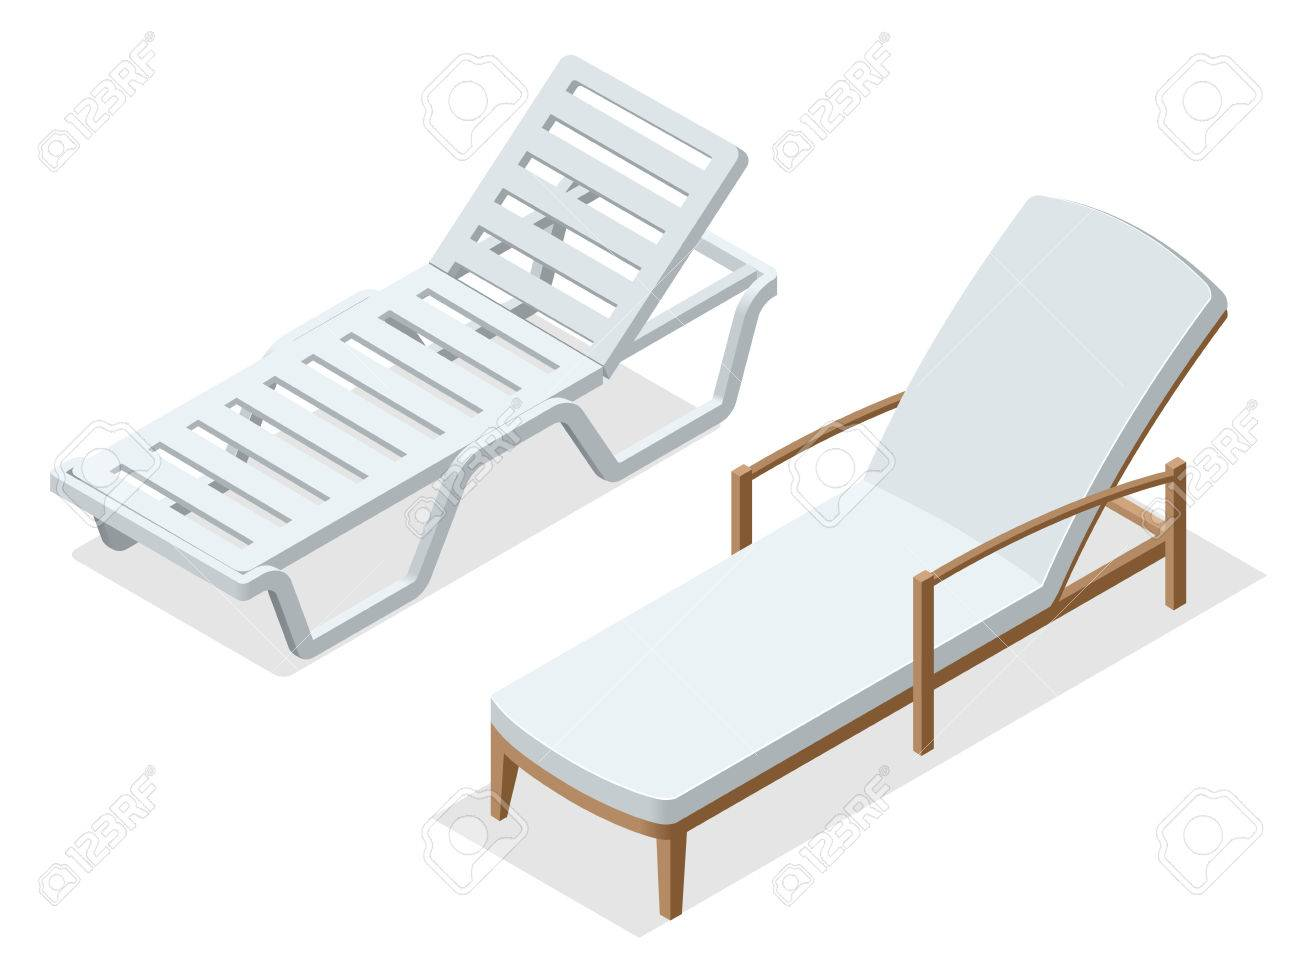 Merveilleux Beach Chairs Isolated On White Background. Wooden Beach Chaise Longue Flat  3d Isometric Vector Illustration